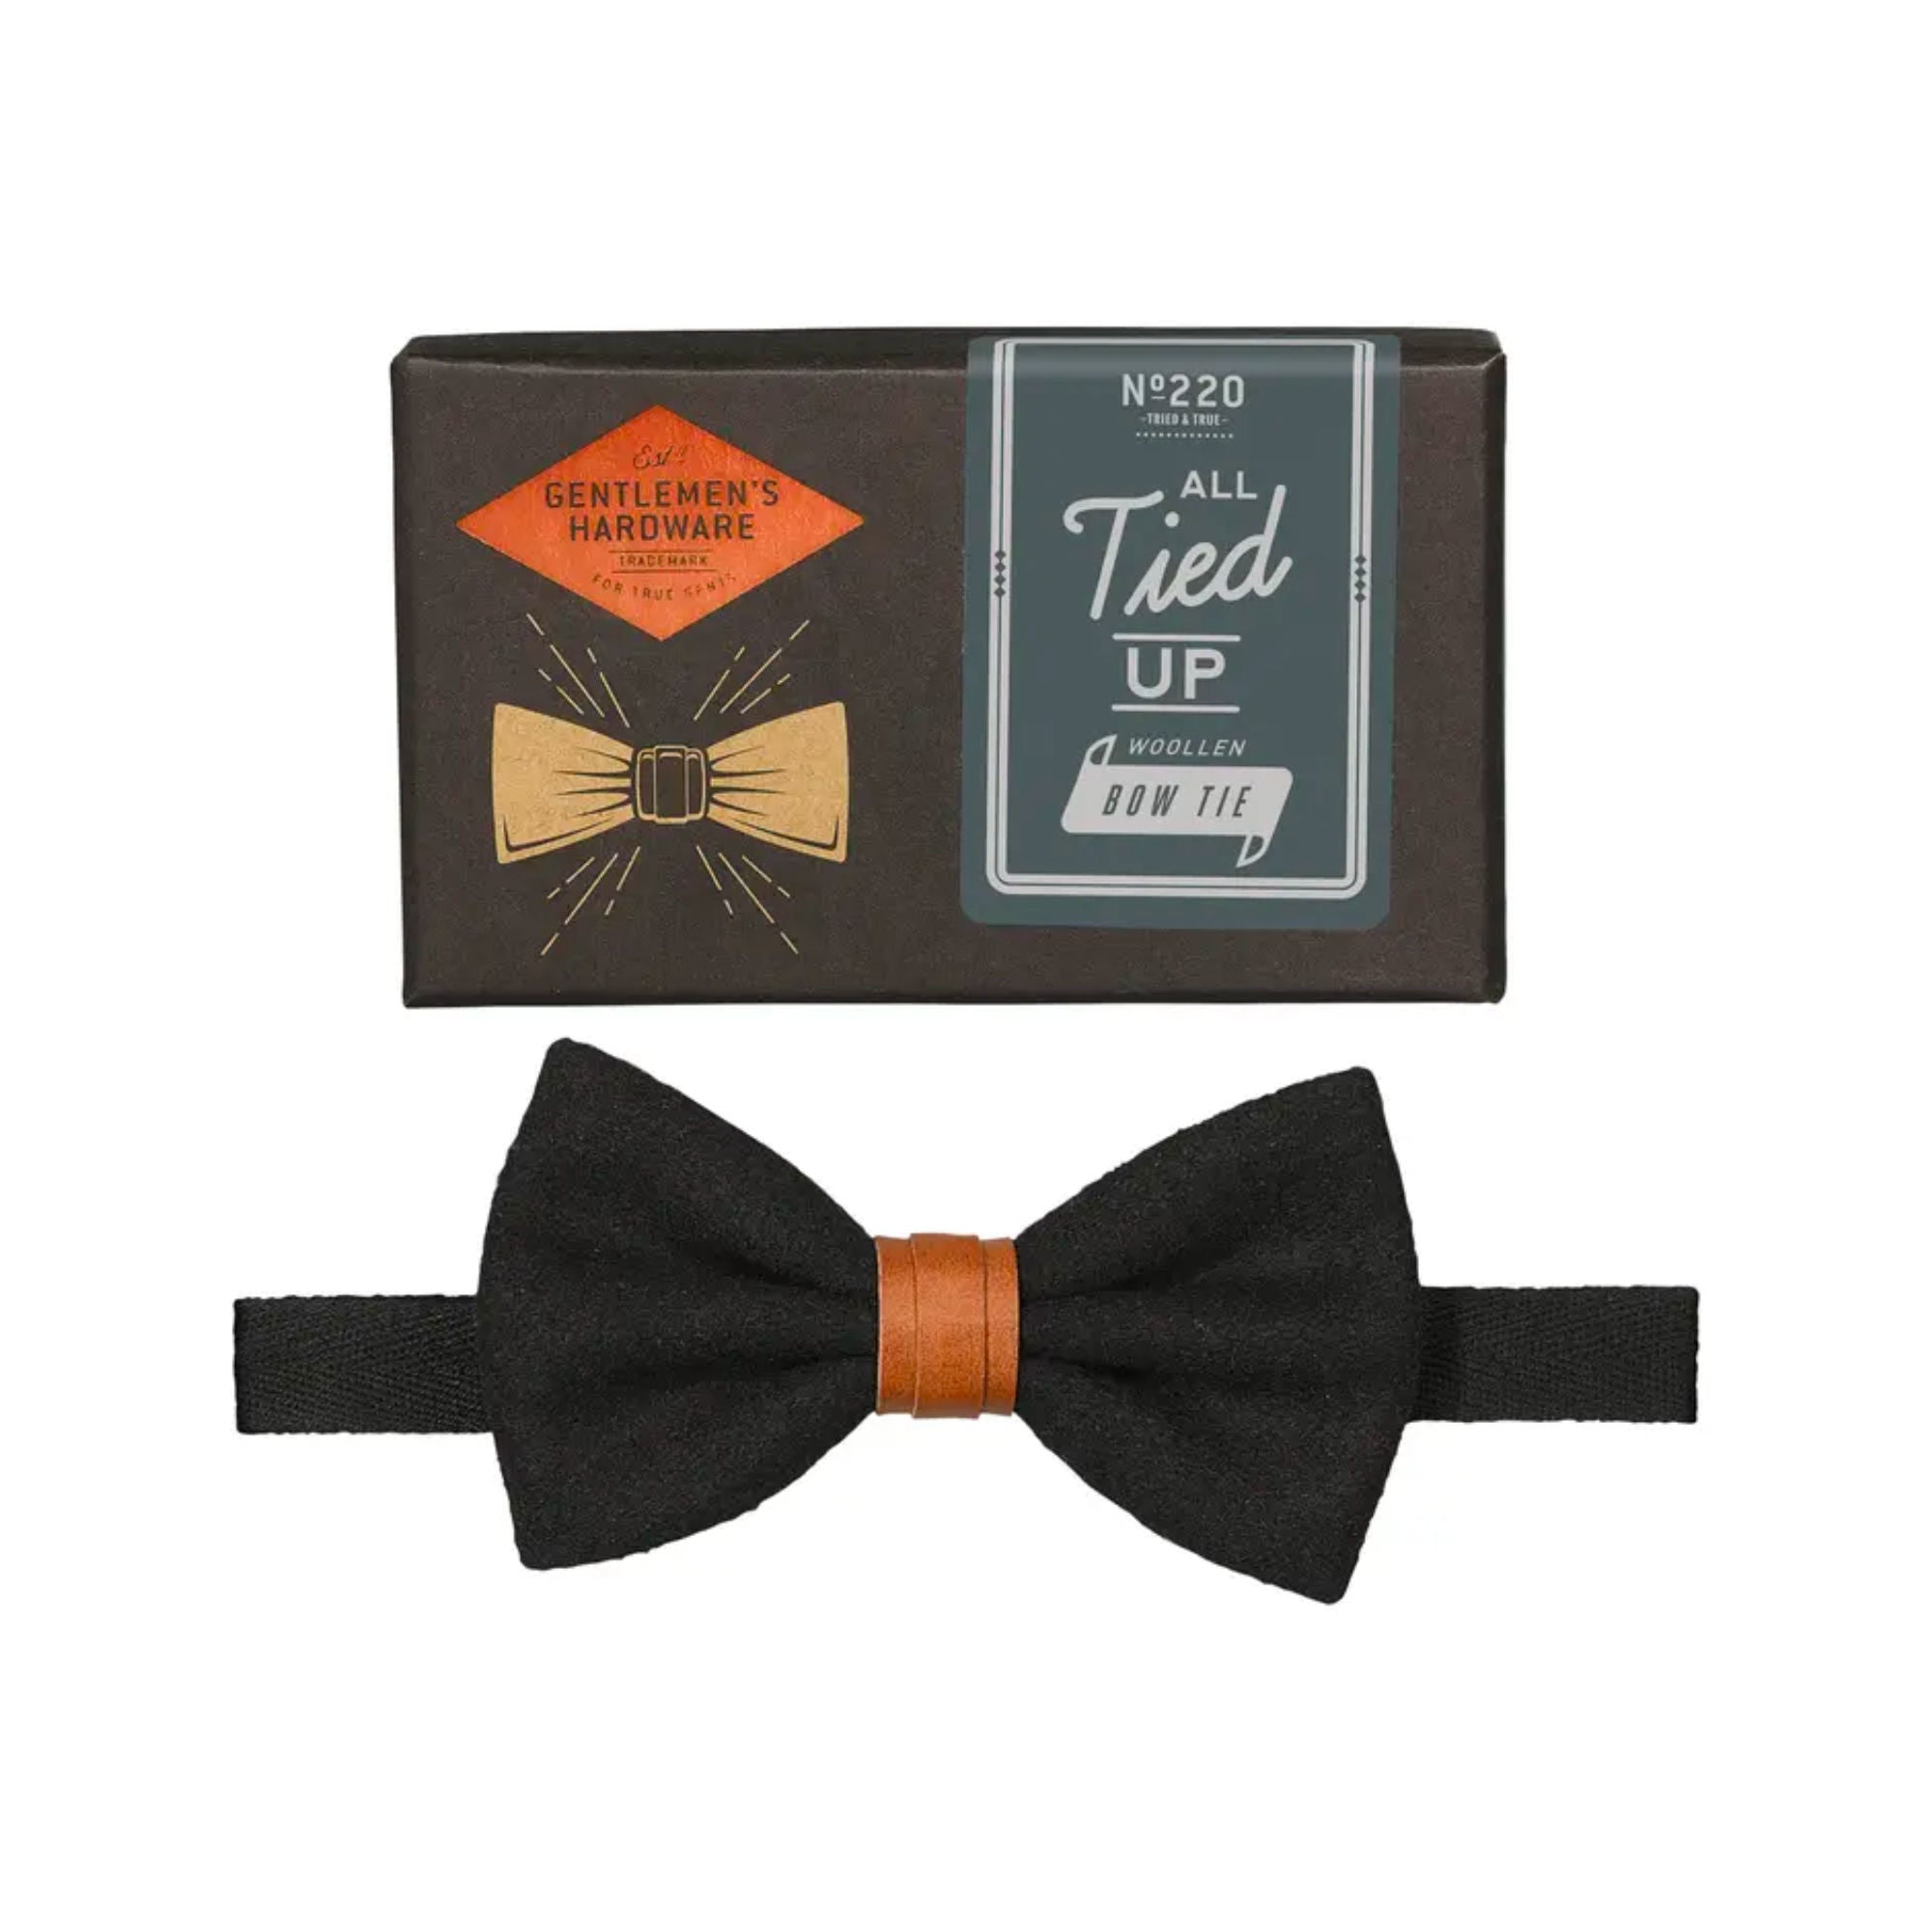 Gentlemen's Hardware All Tied Up Wollen Bow Tie